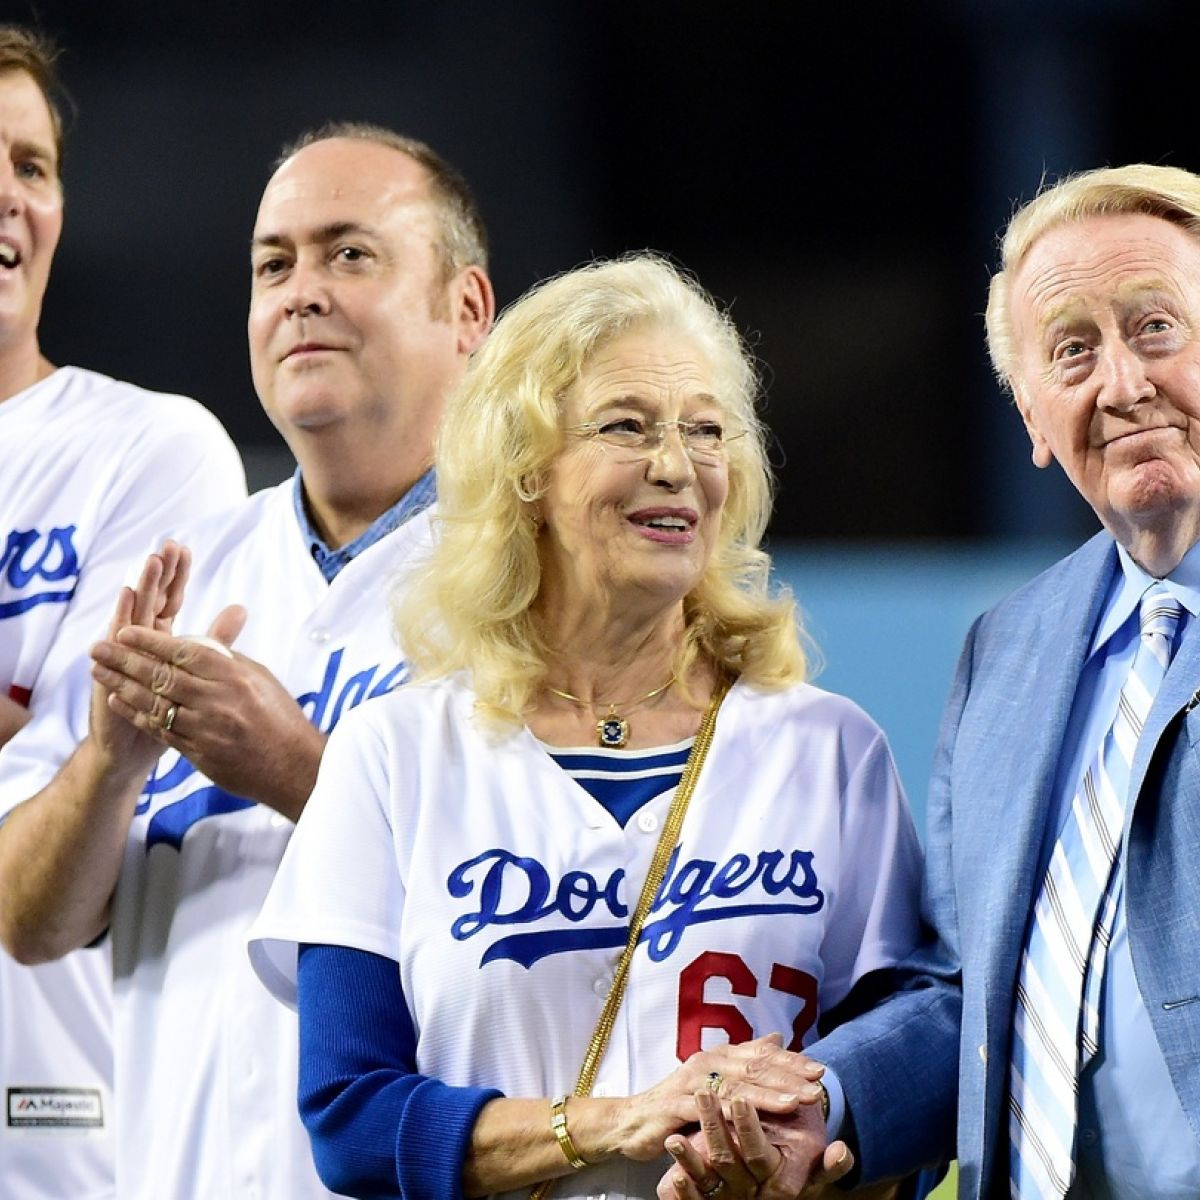 America at Large: Vin Scully's lilt a soundtrack to a bygone age